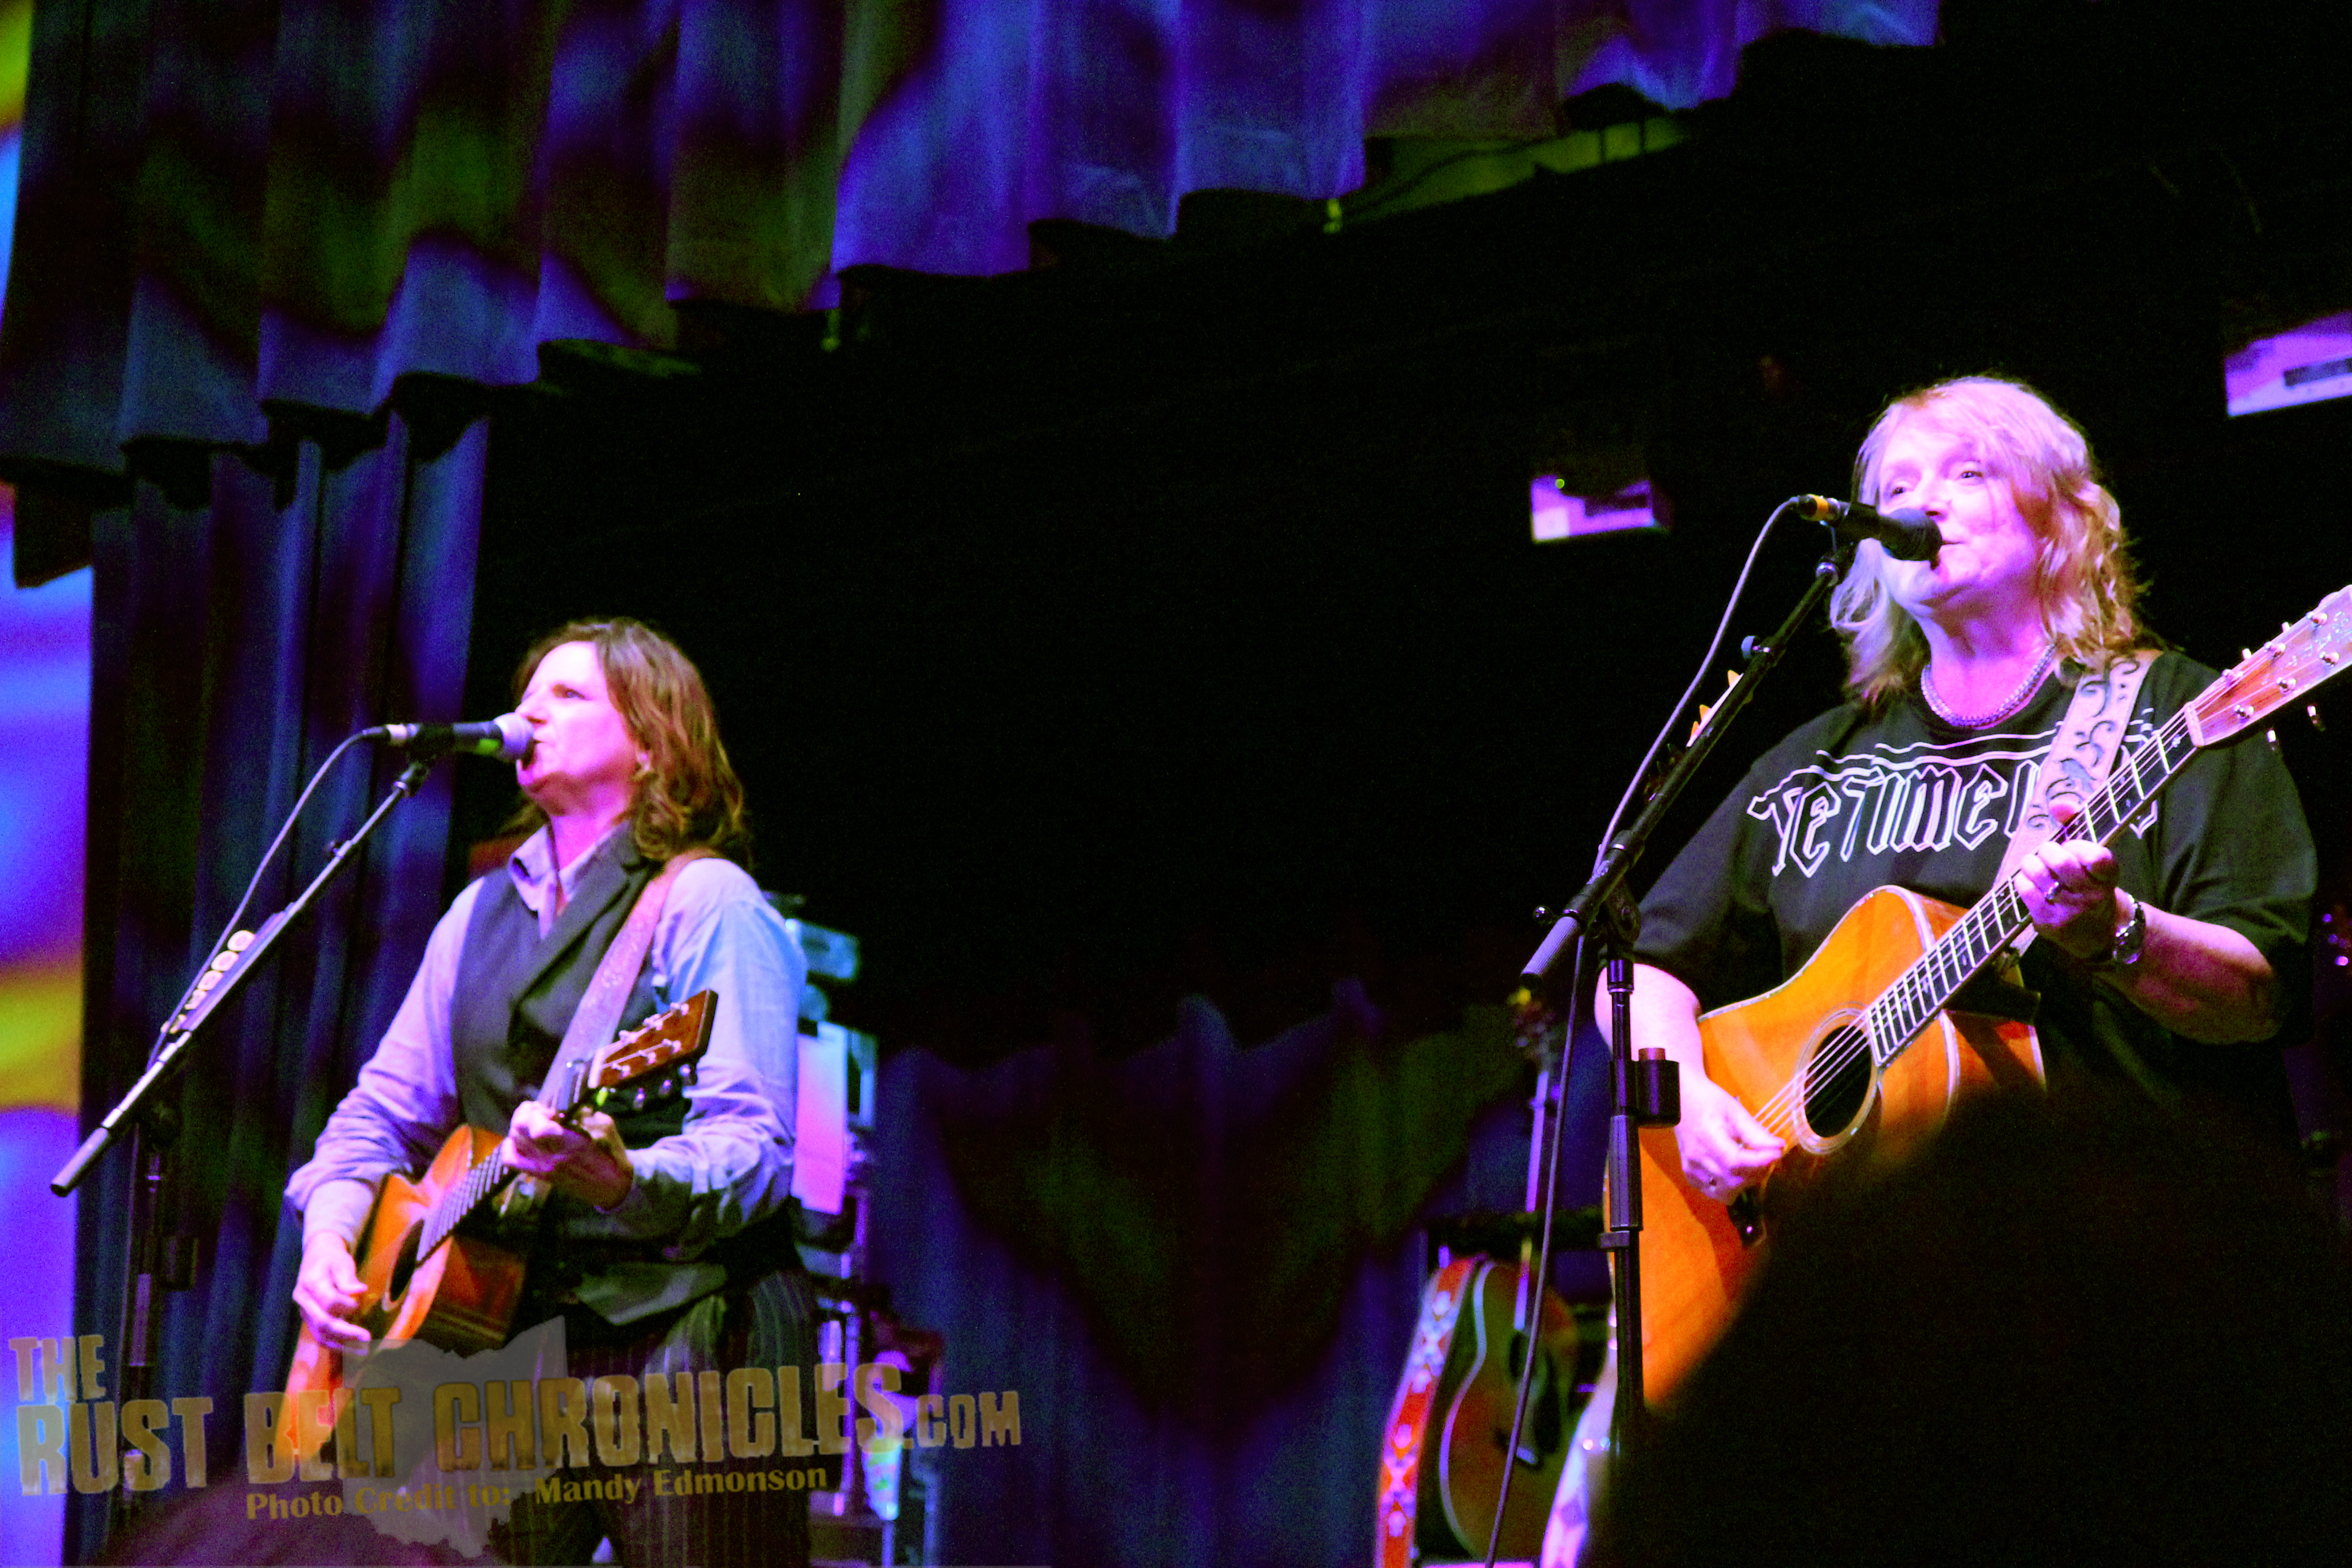 Concert Review The Indigo Girls Live At The Music Box Supper Club